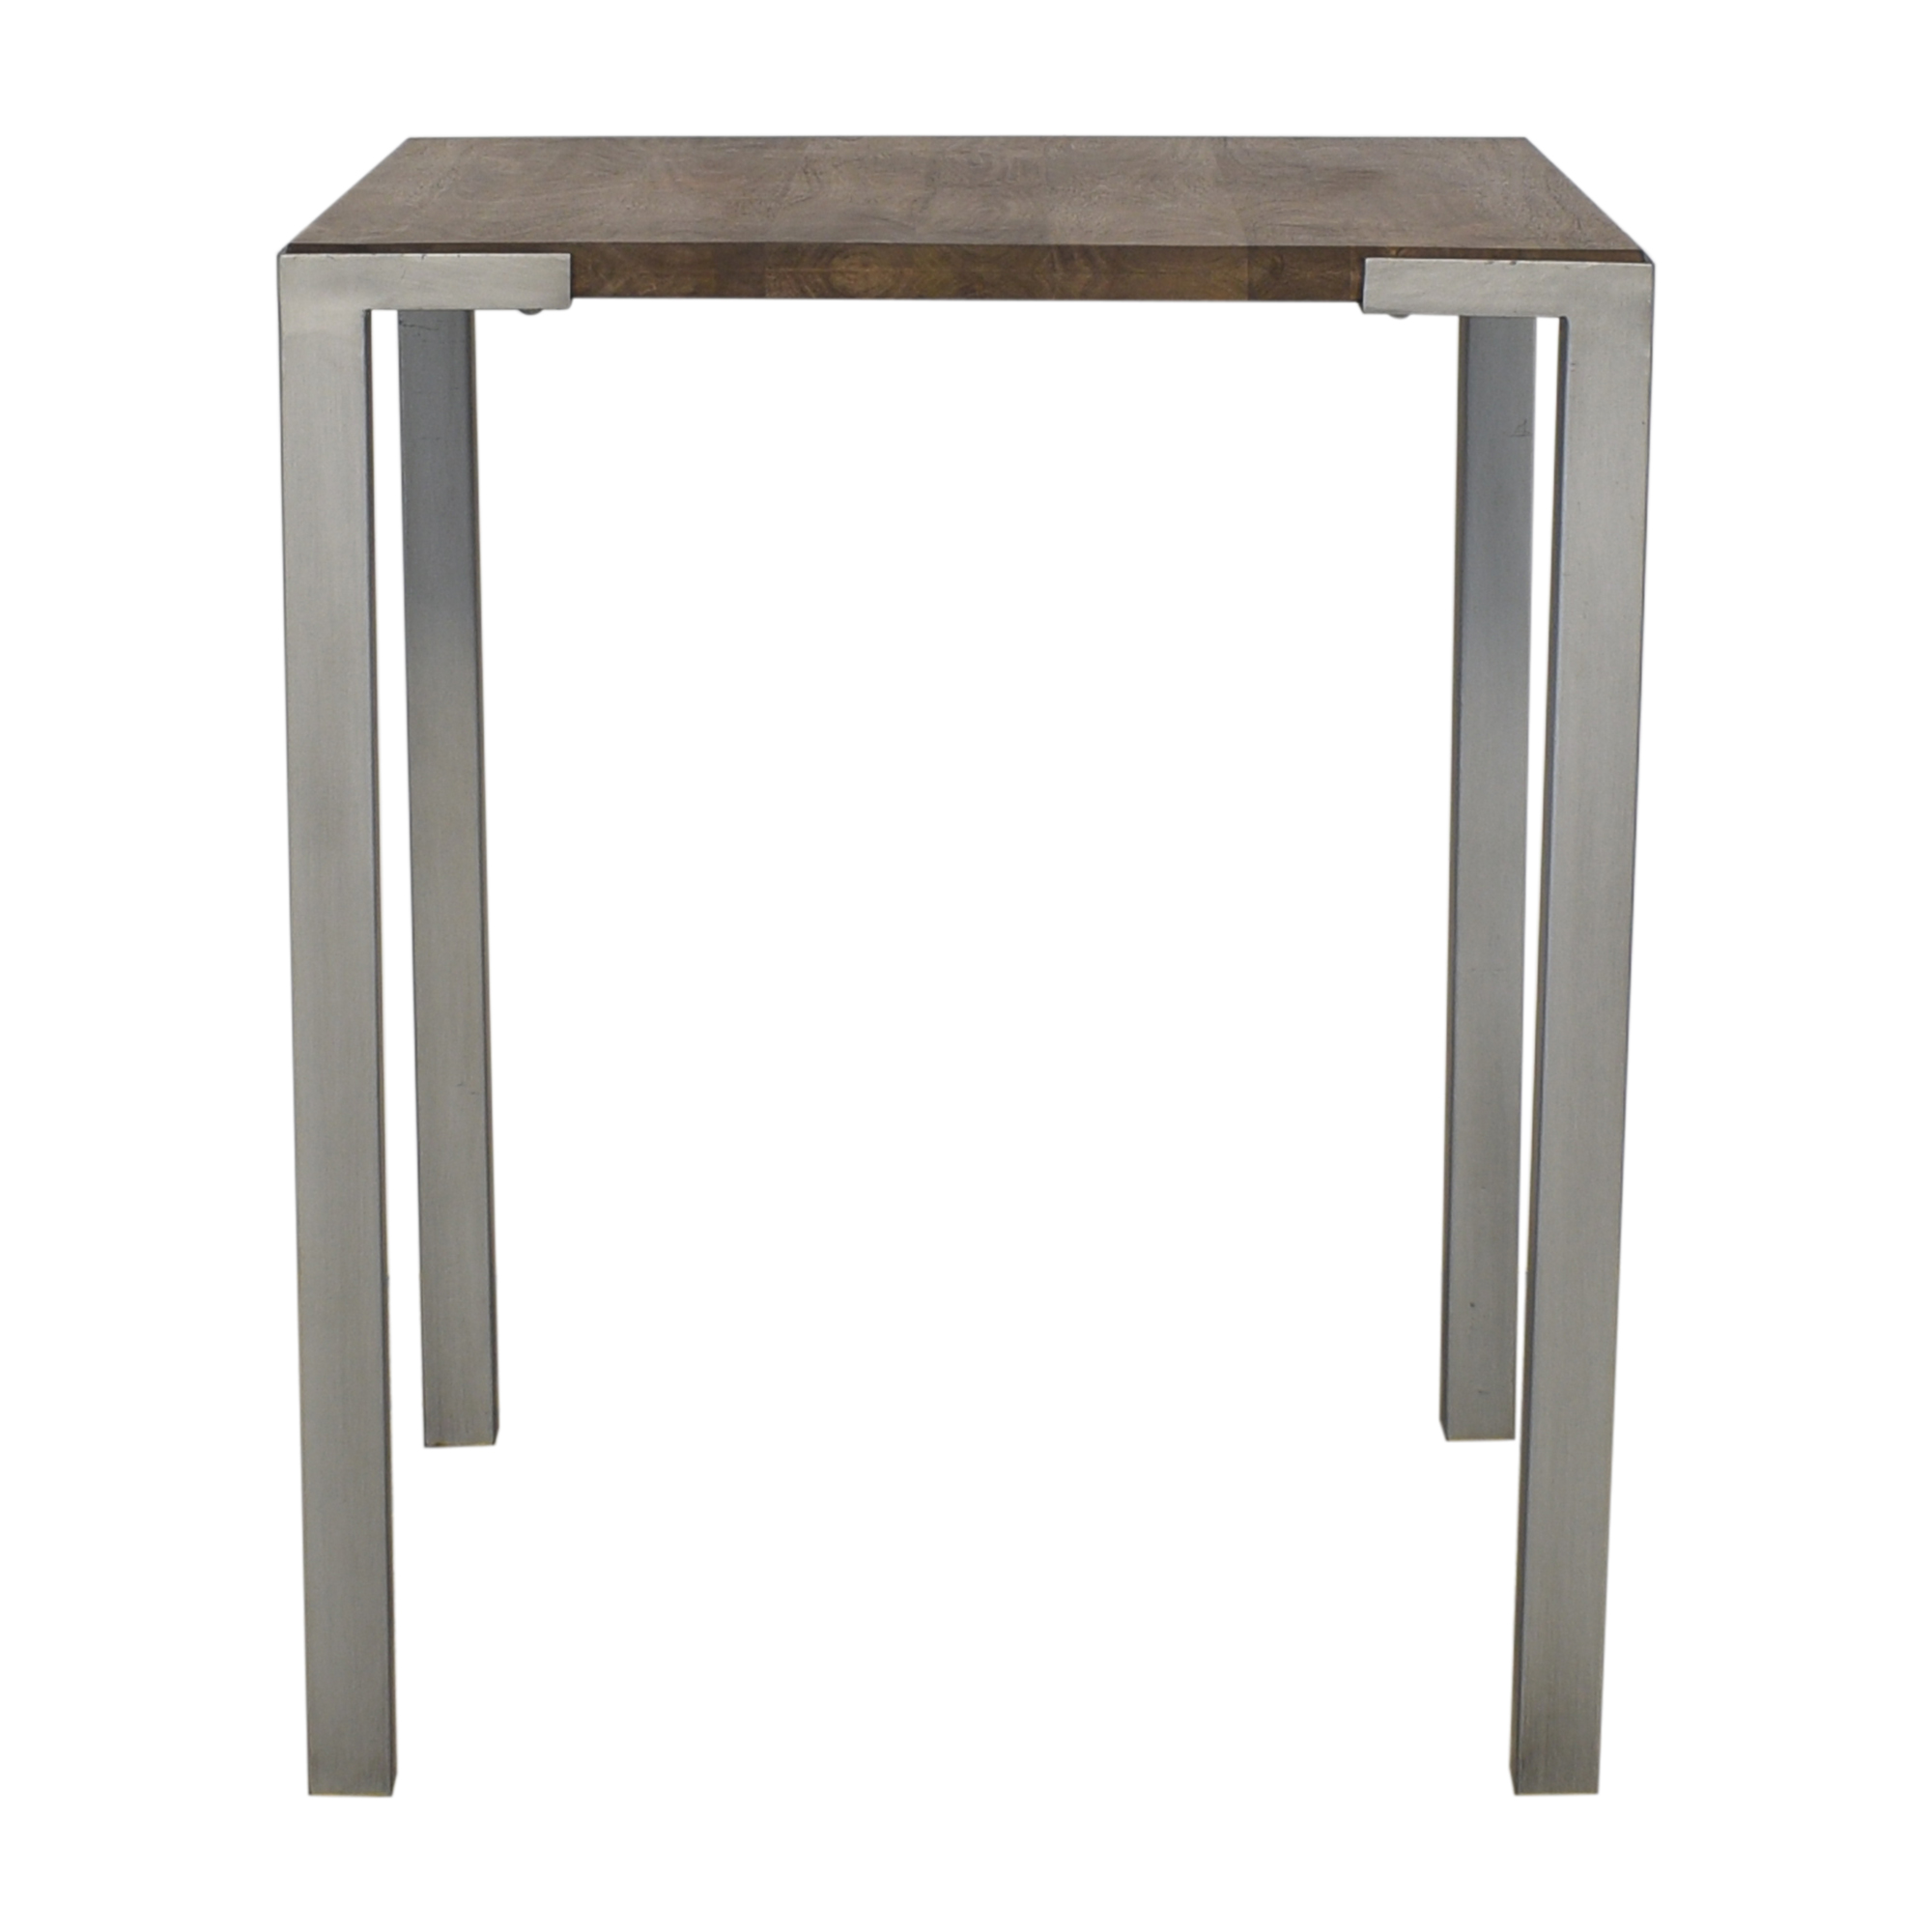 CB2 CB2 Stilt Dining Table Dinner Tables